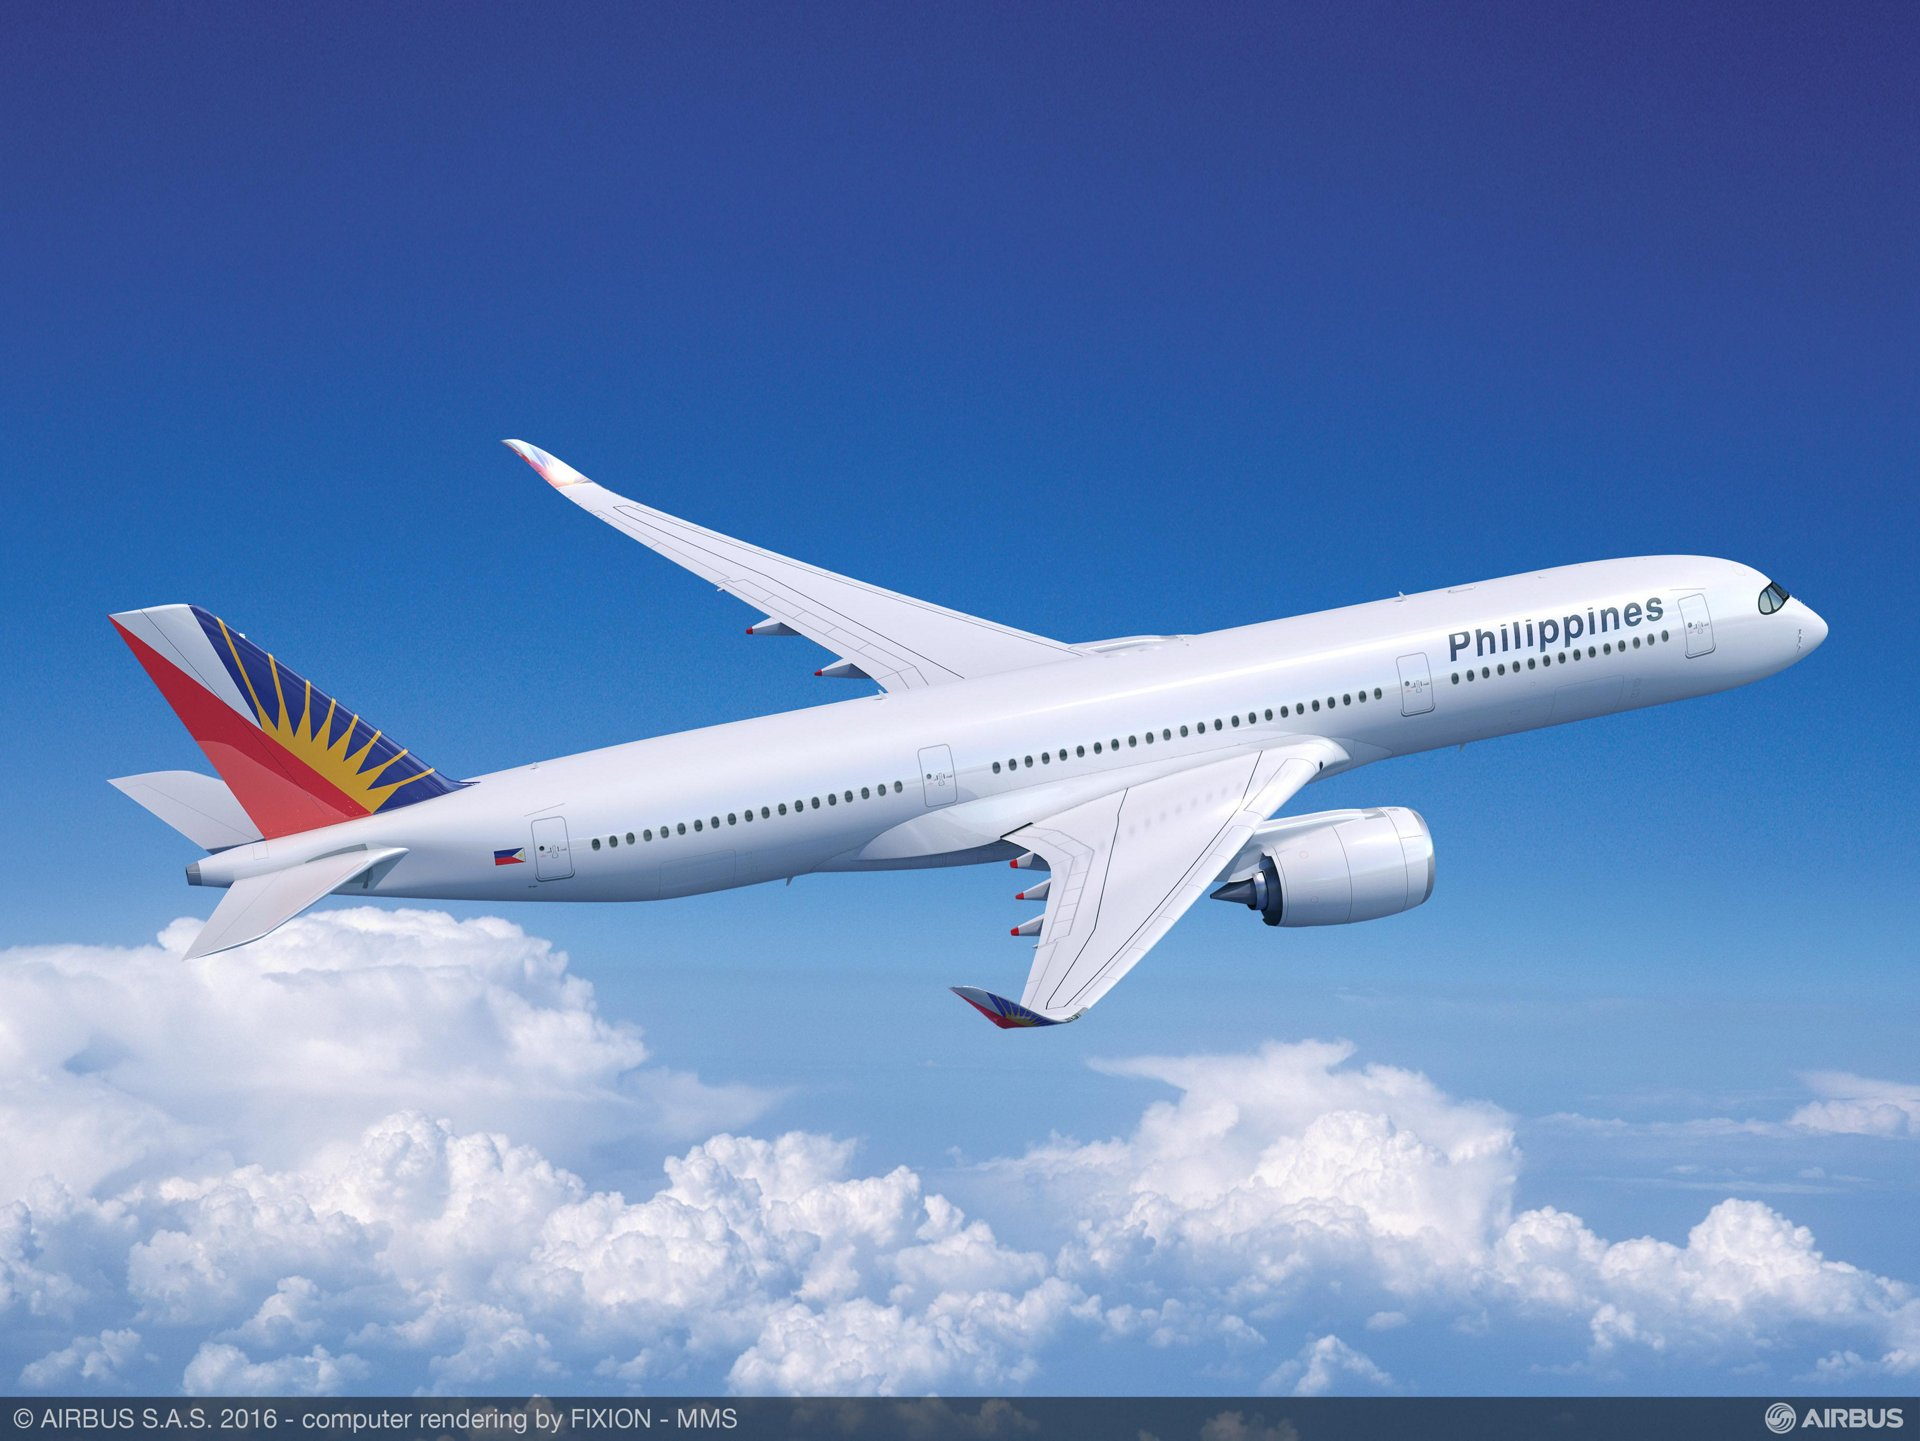 Philippine Airlines selects Airbus Flight Hour Services maintenance solution for its A350-900 fleet